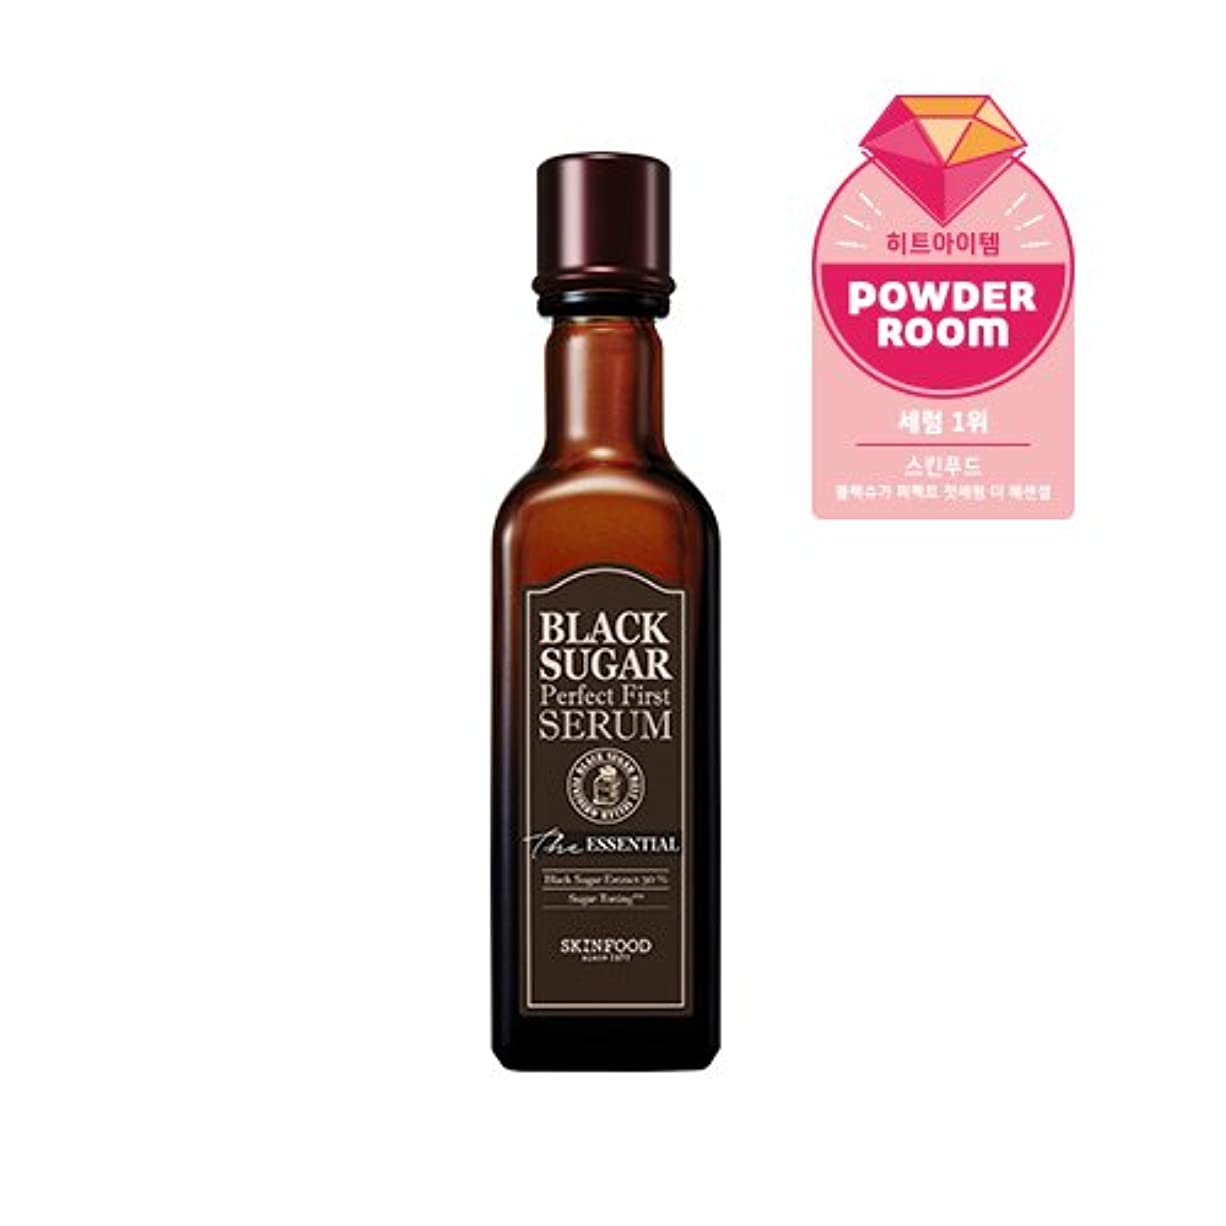 Skinfood black sugar perfect first serum the essential/黒糖完璧な最初の血清必須/120ml +60ea [並行輸入品]